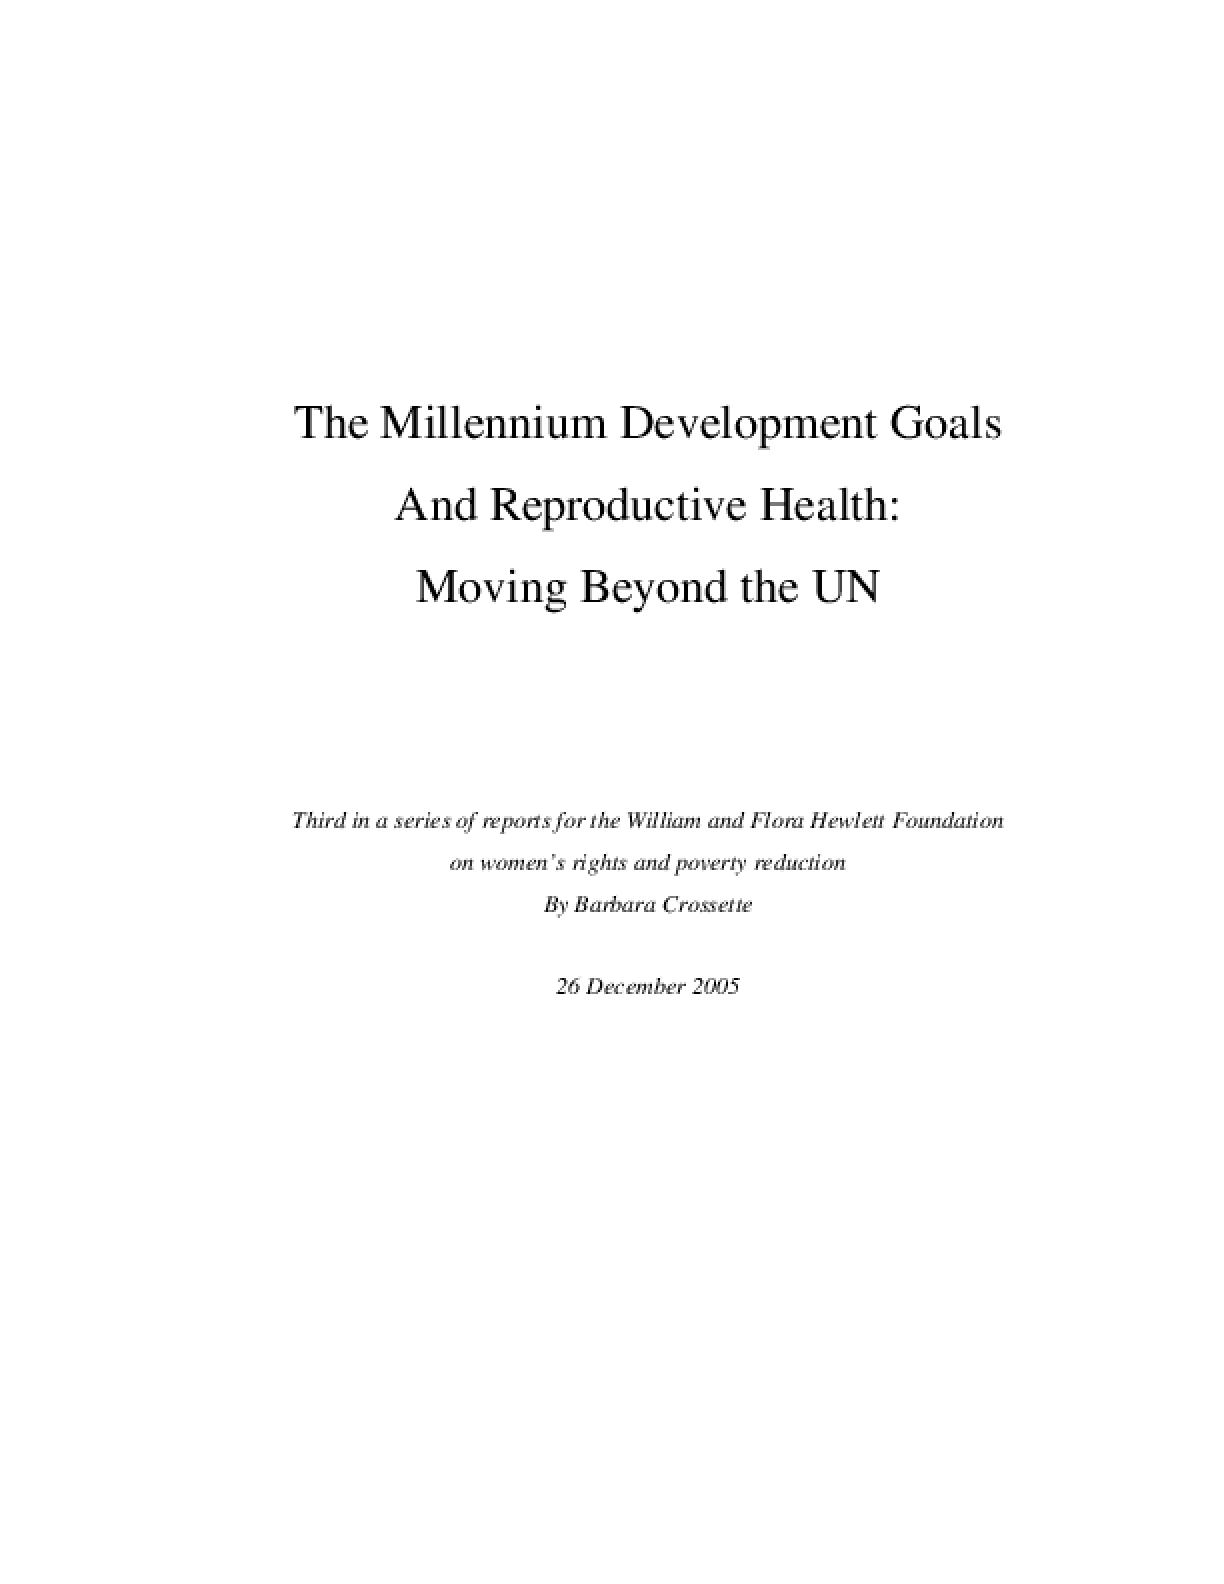 The Millennium Development Goals And Reproductive Health: Moving Beyond the UN